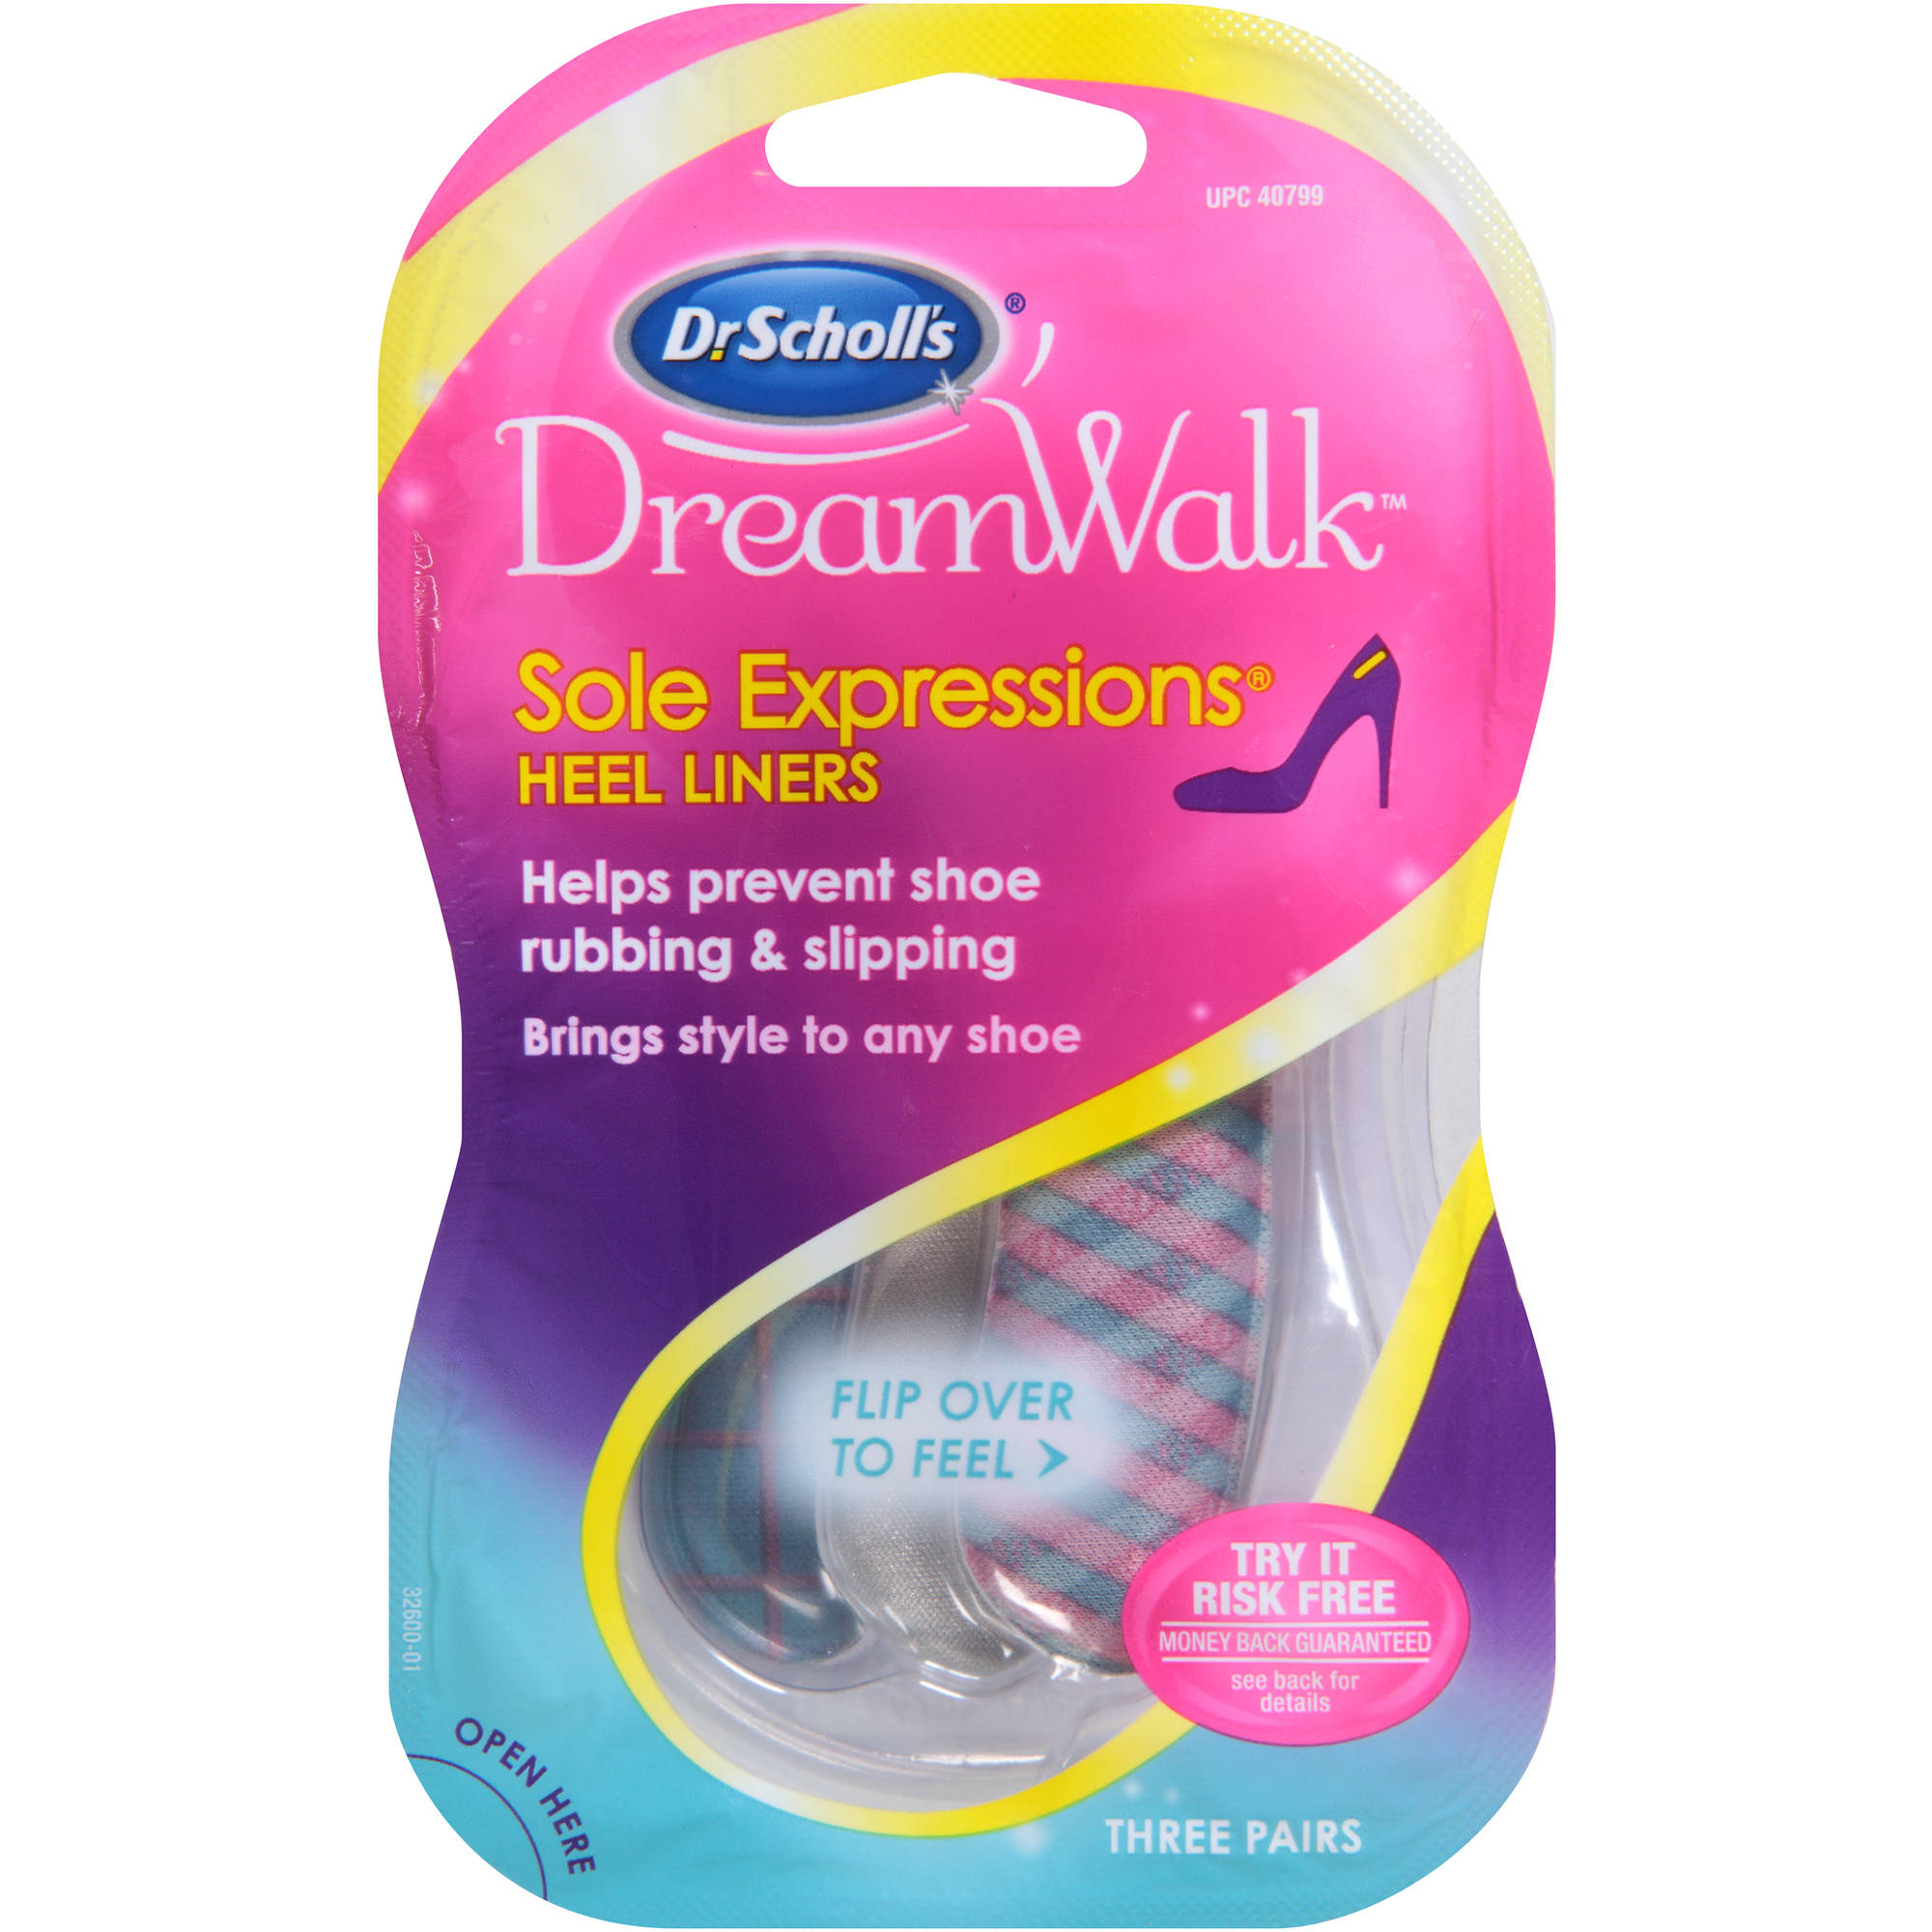 Dr. Scholl's DreamWalk Sole Expressions Heel Liners 3 Pairs